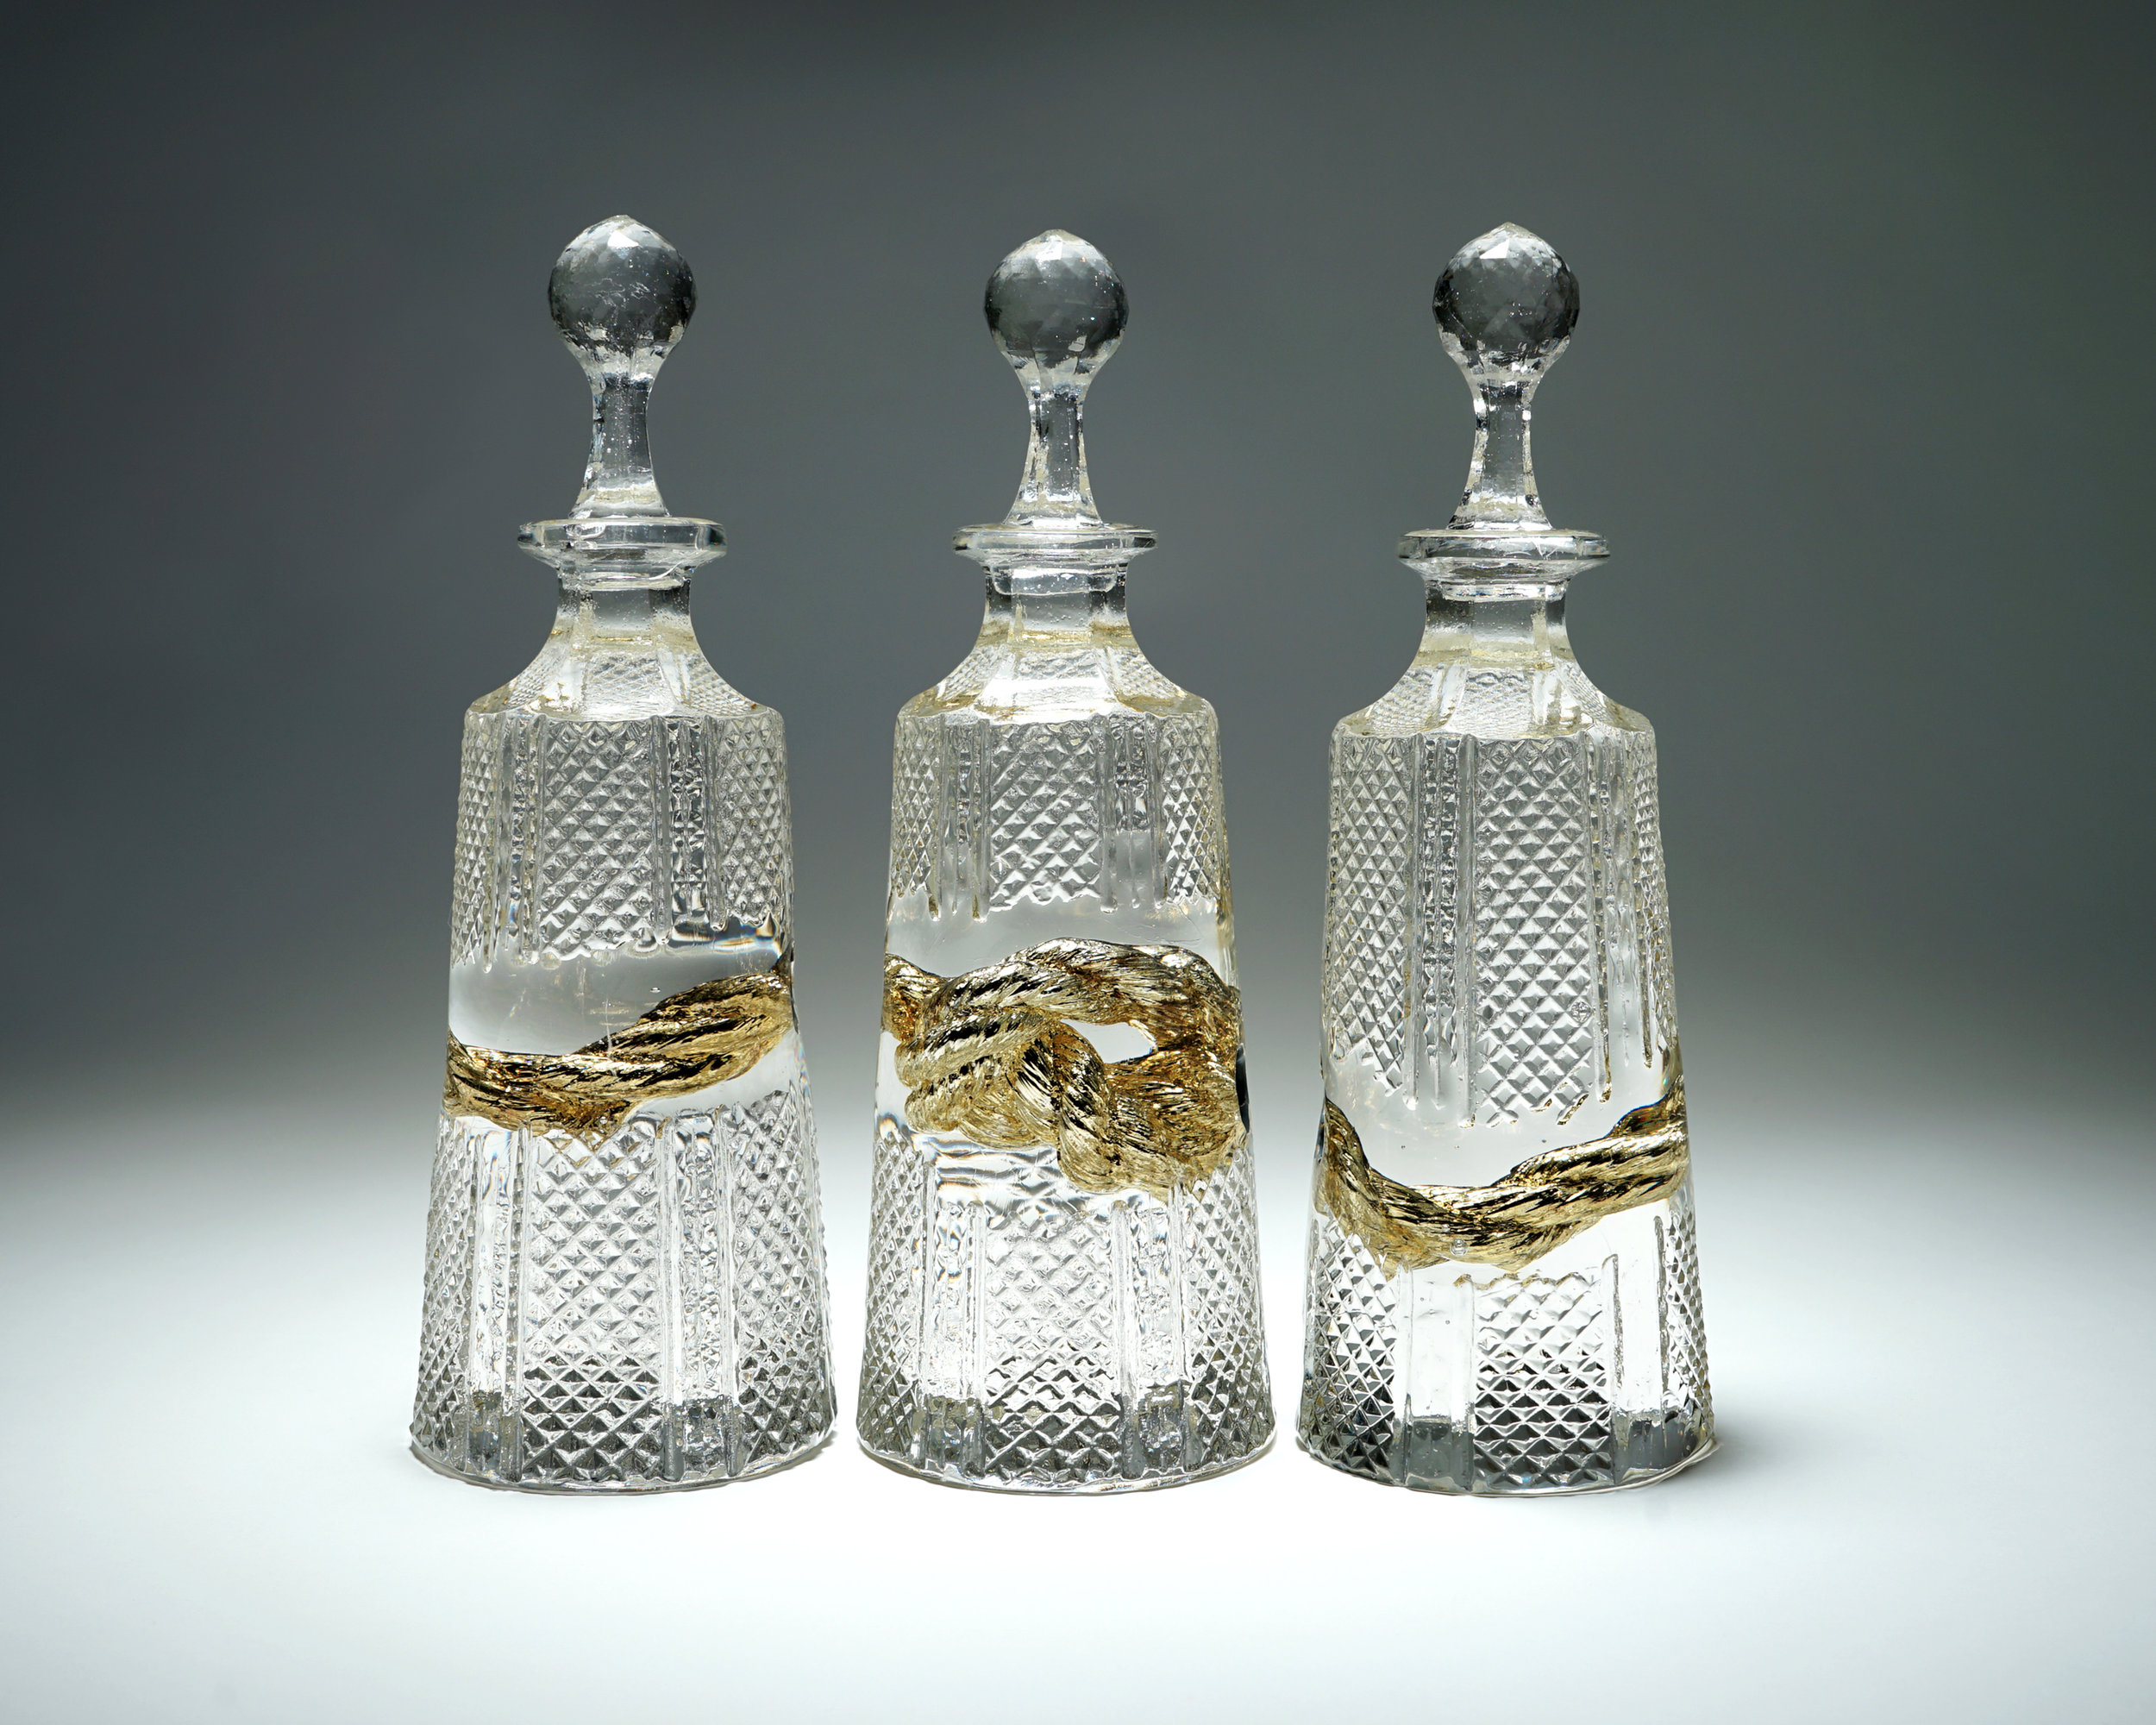 'The Golden Thread' (Hex Decanters), 2019, Cast Crystal / 24 Carat Gold Mirror, 11h x 11w x 3.50d in